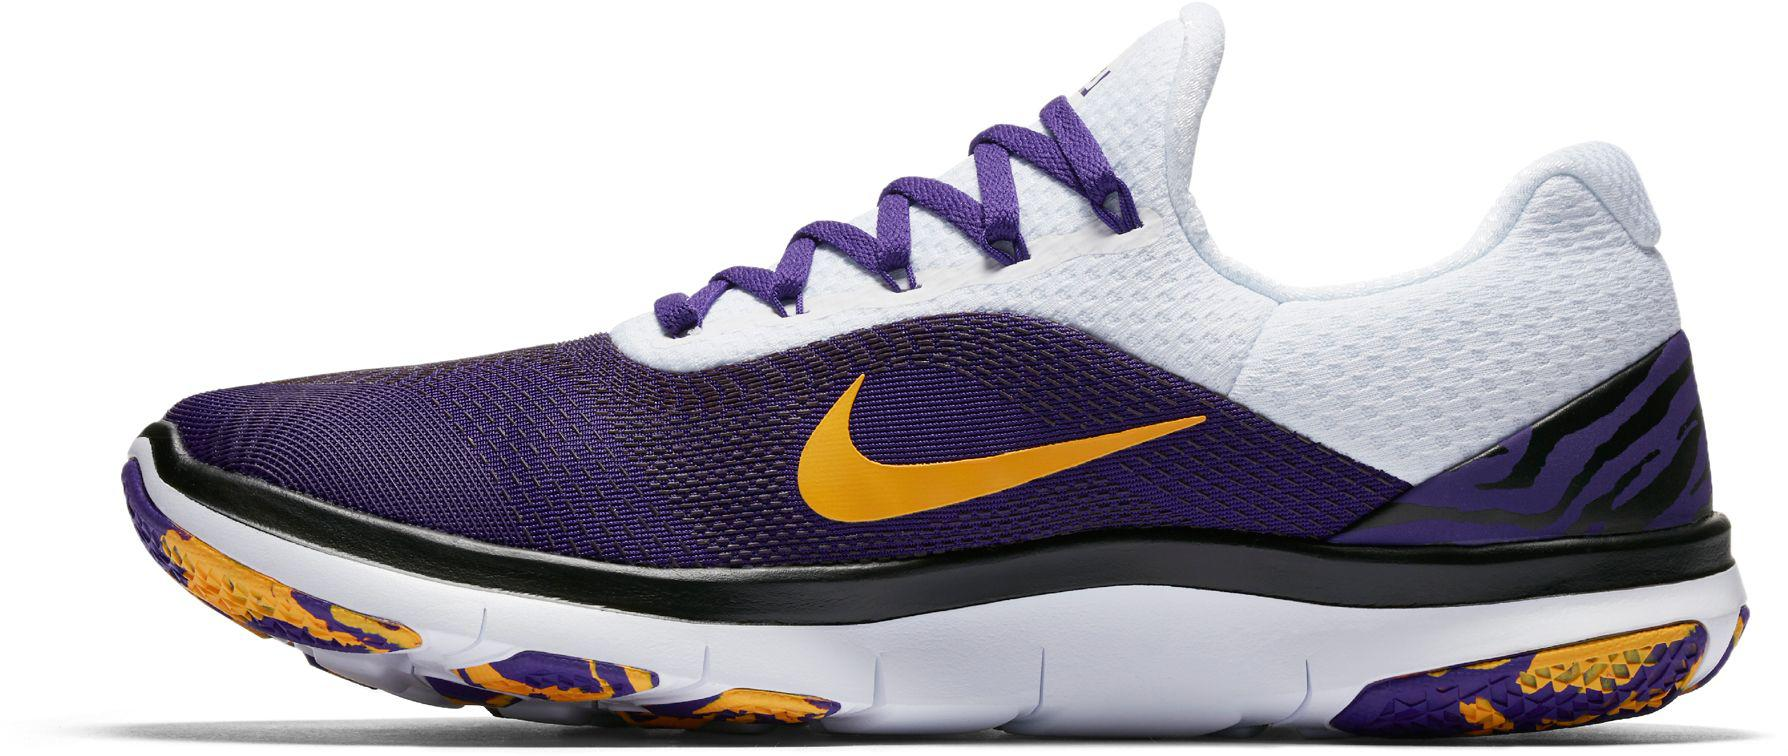 7320178ca5 Gallery. Previously sold at: Dick's Sporting Goods · Men's Nike Free ...